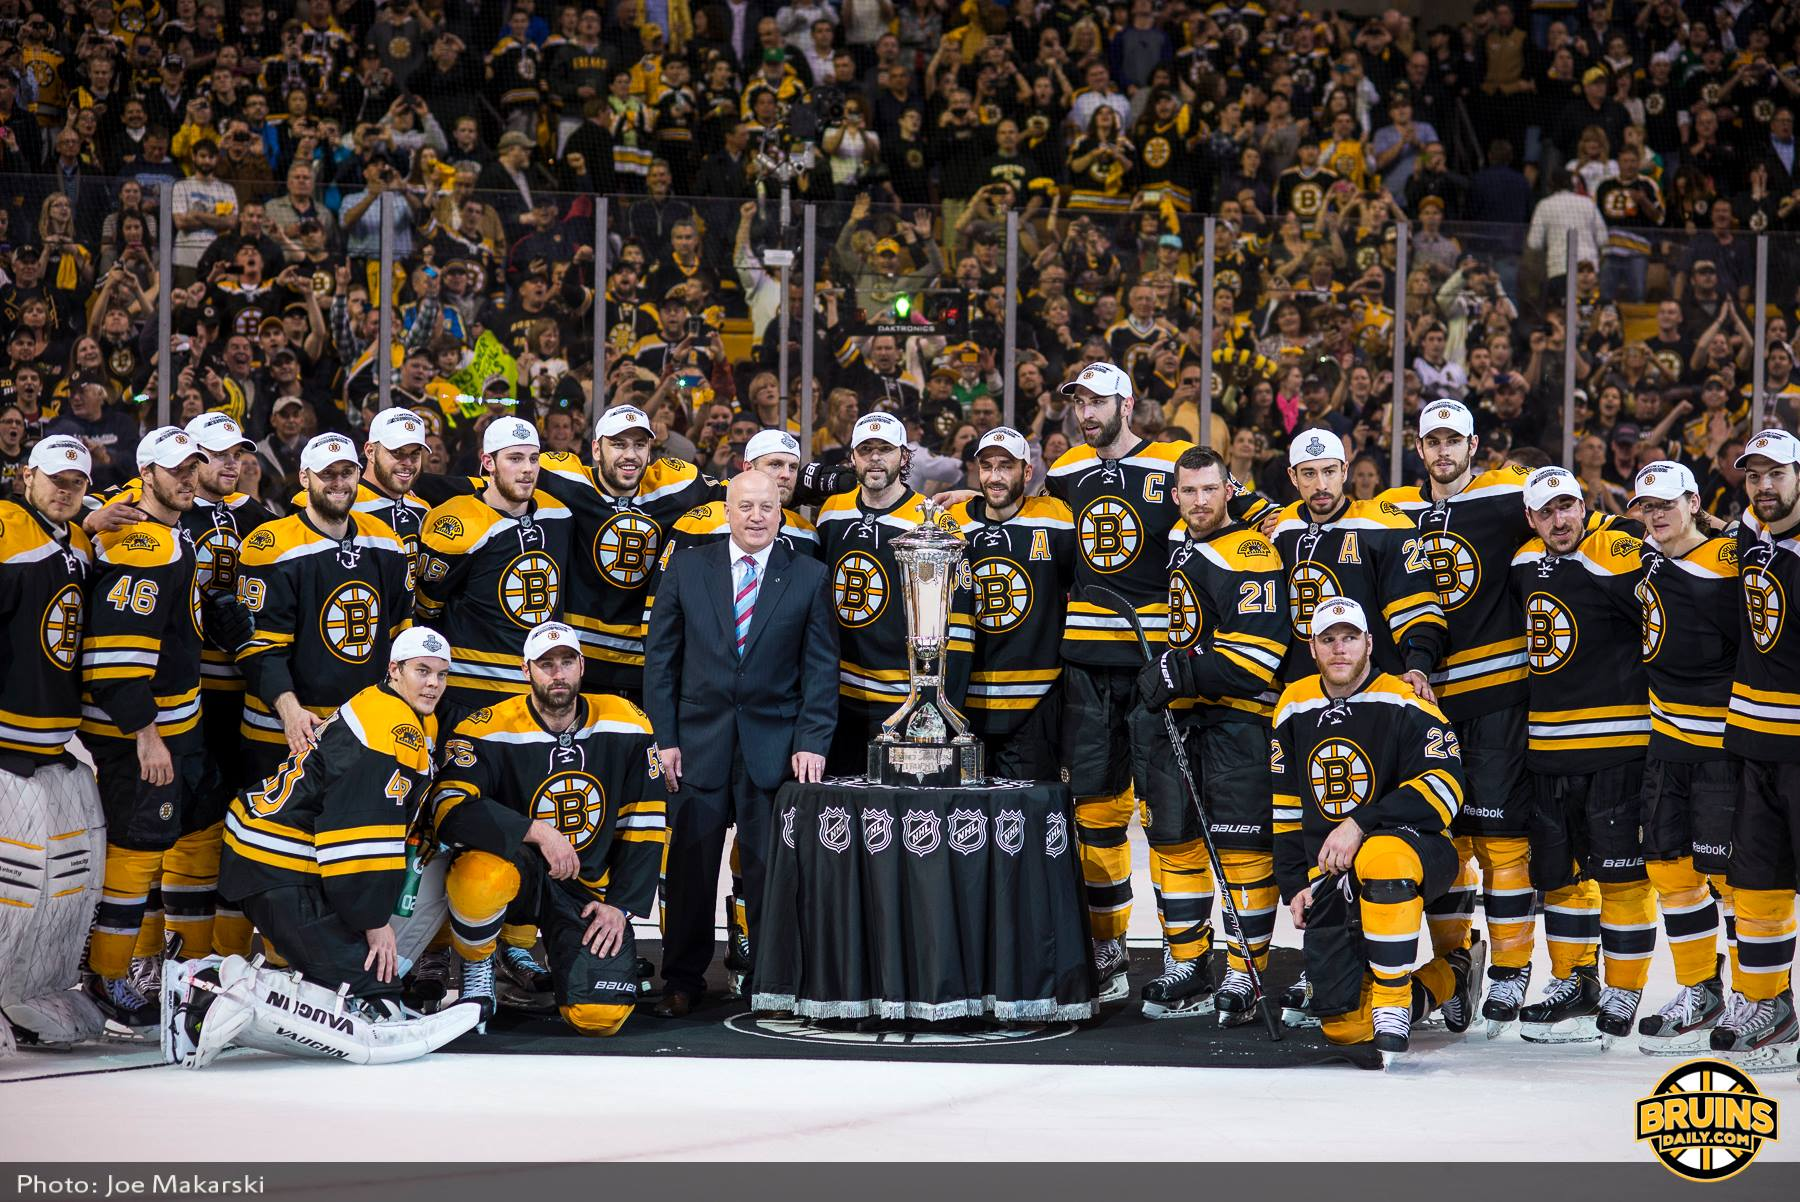 Boston Bruins: Cue The Duckboats? Oddsmakers Like Bruins' Chances